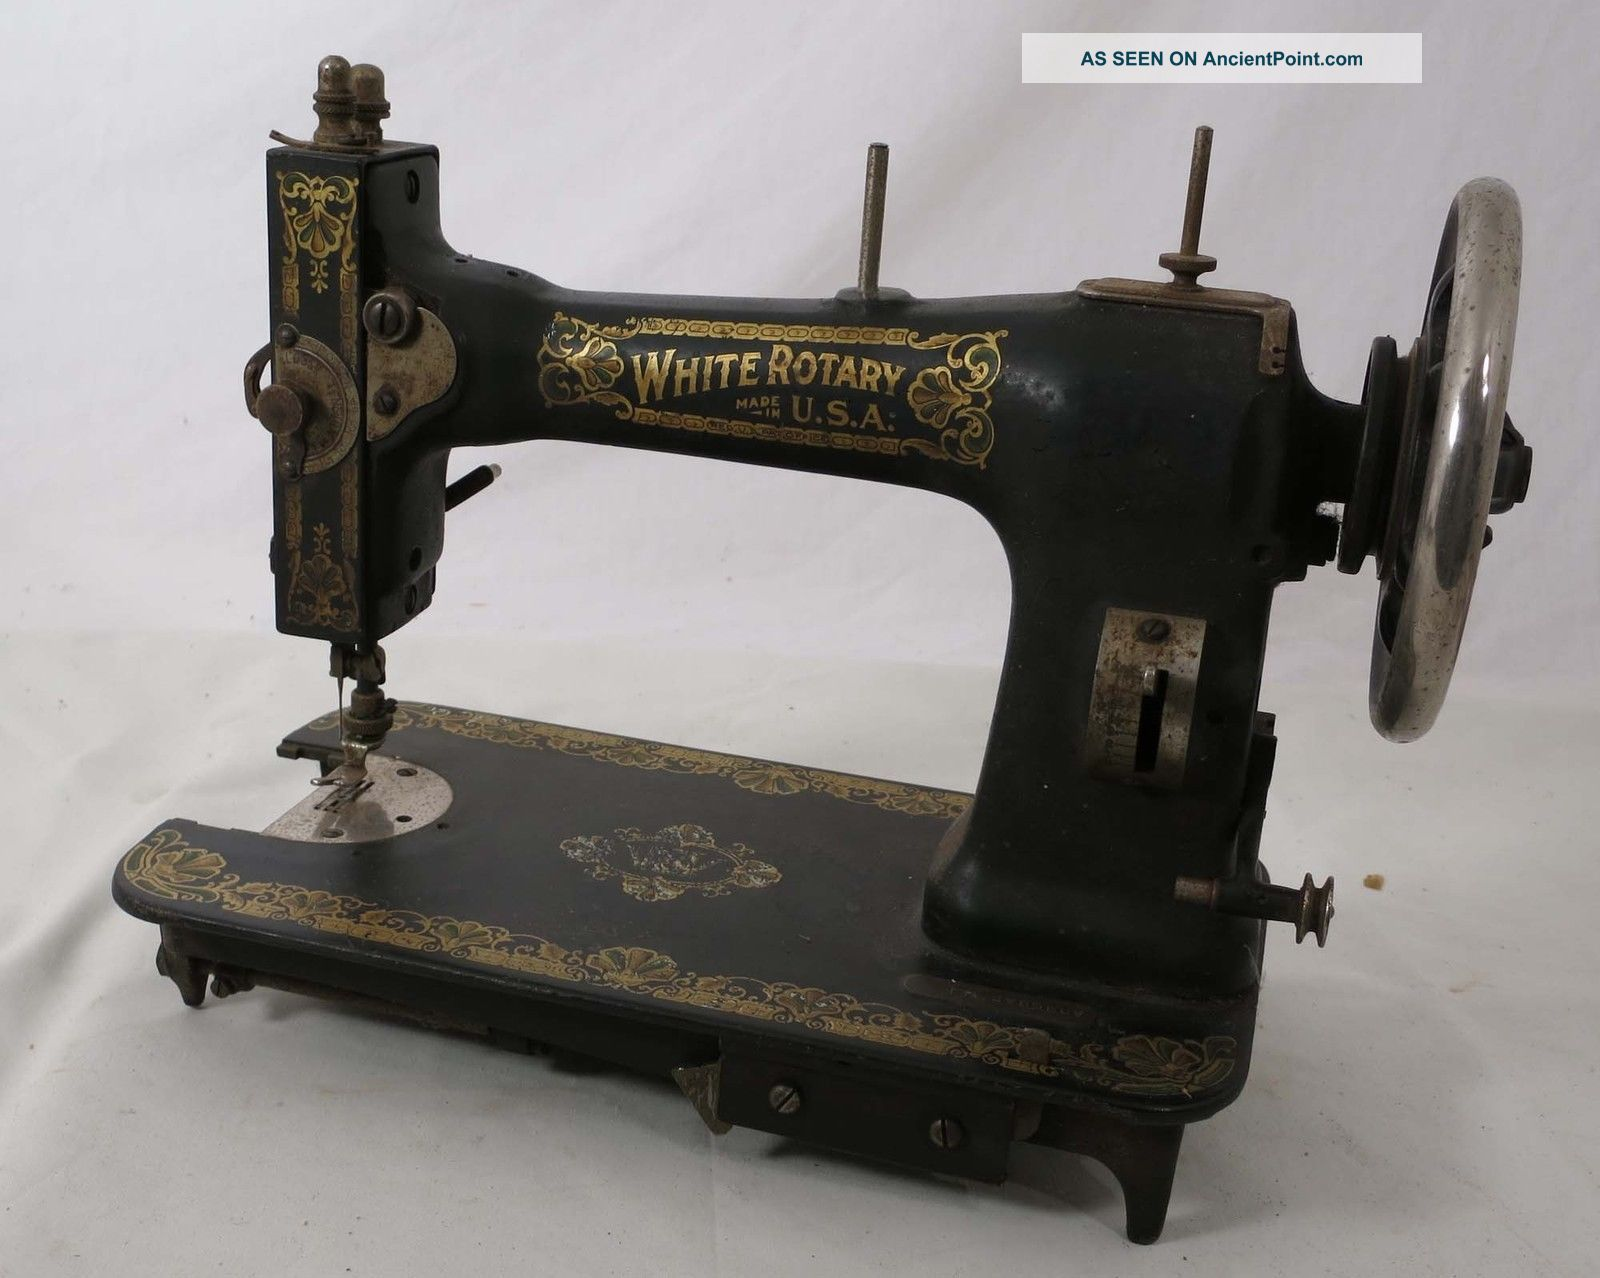 White Rotary Treadle Sewing Machine Vintage Pretty Steampunk Sewing Machines photo